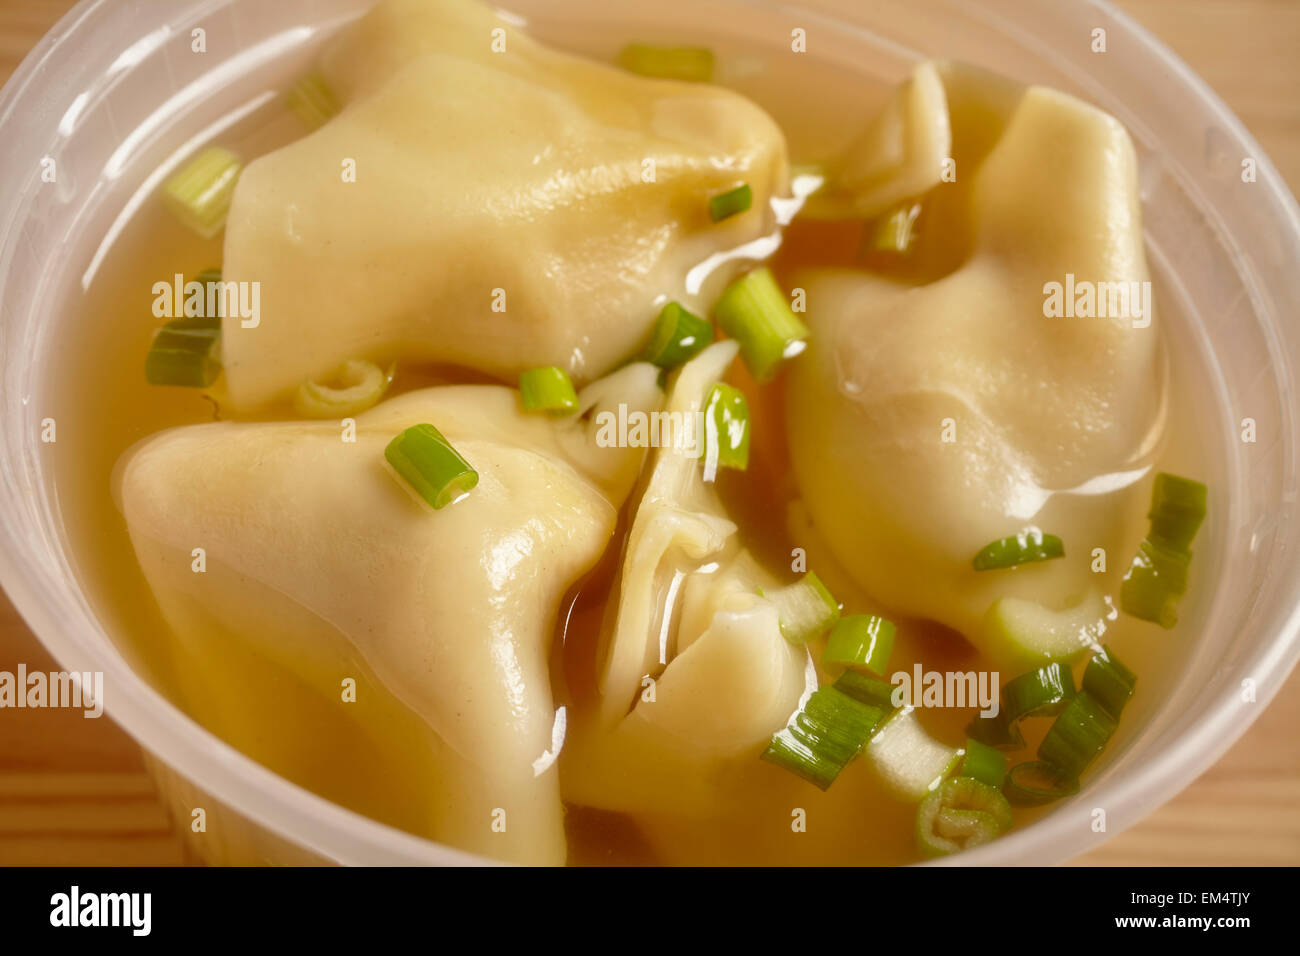 Takeout Stock Photos & Takeout Stock Images - Alamy